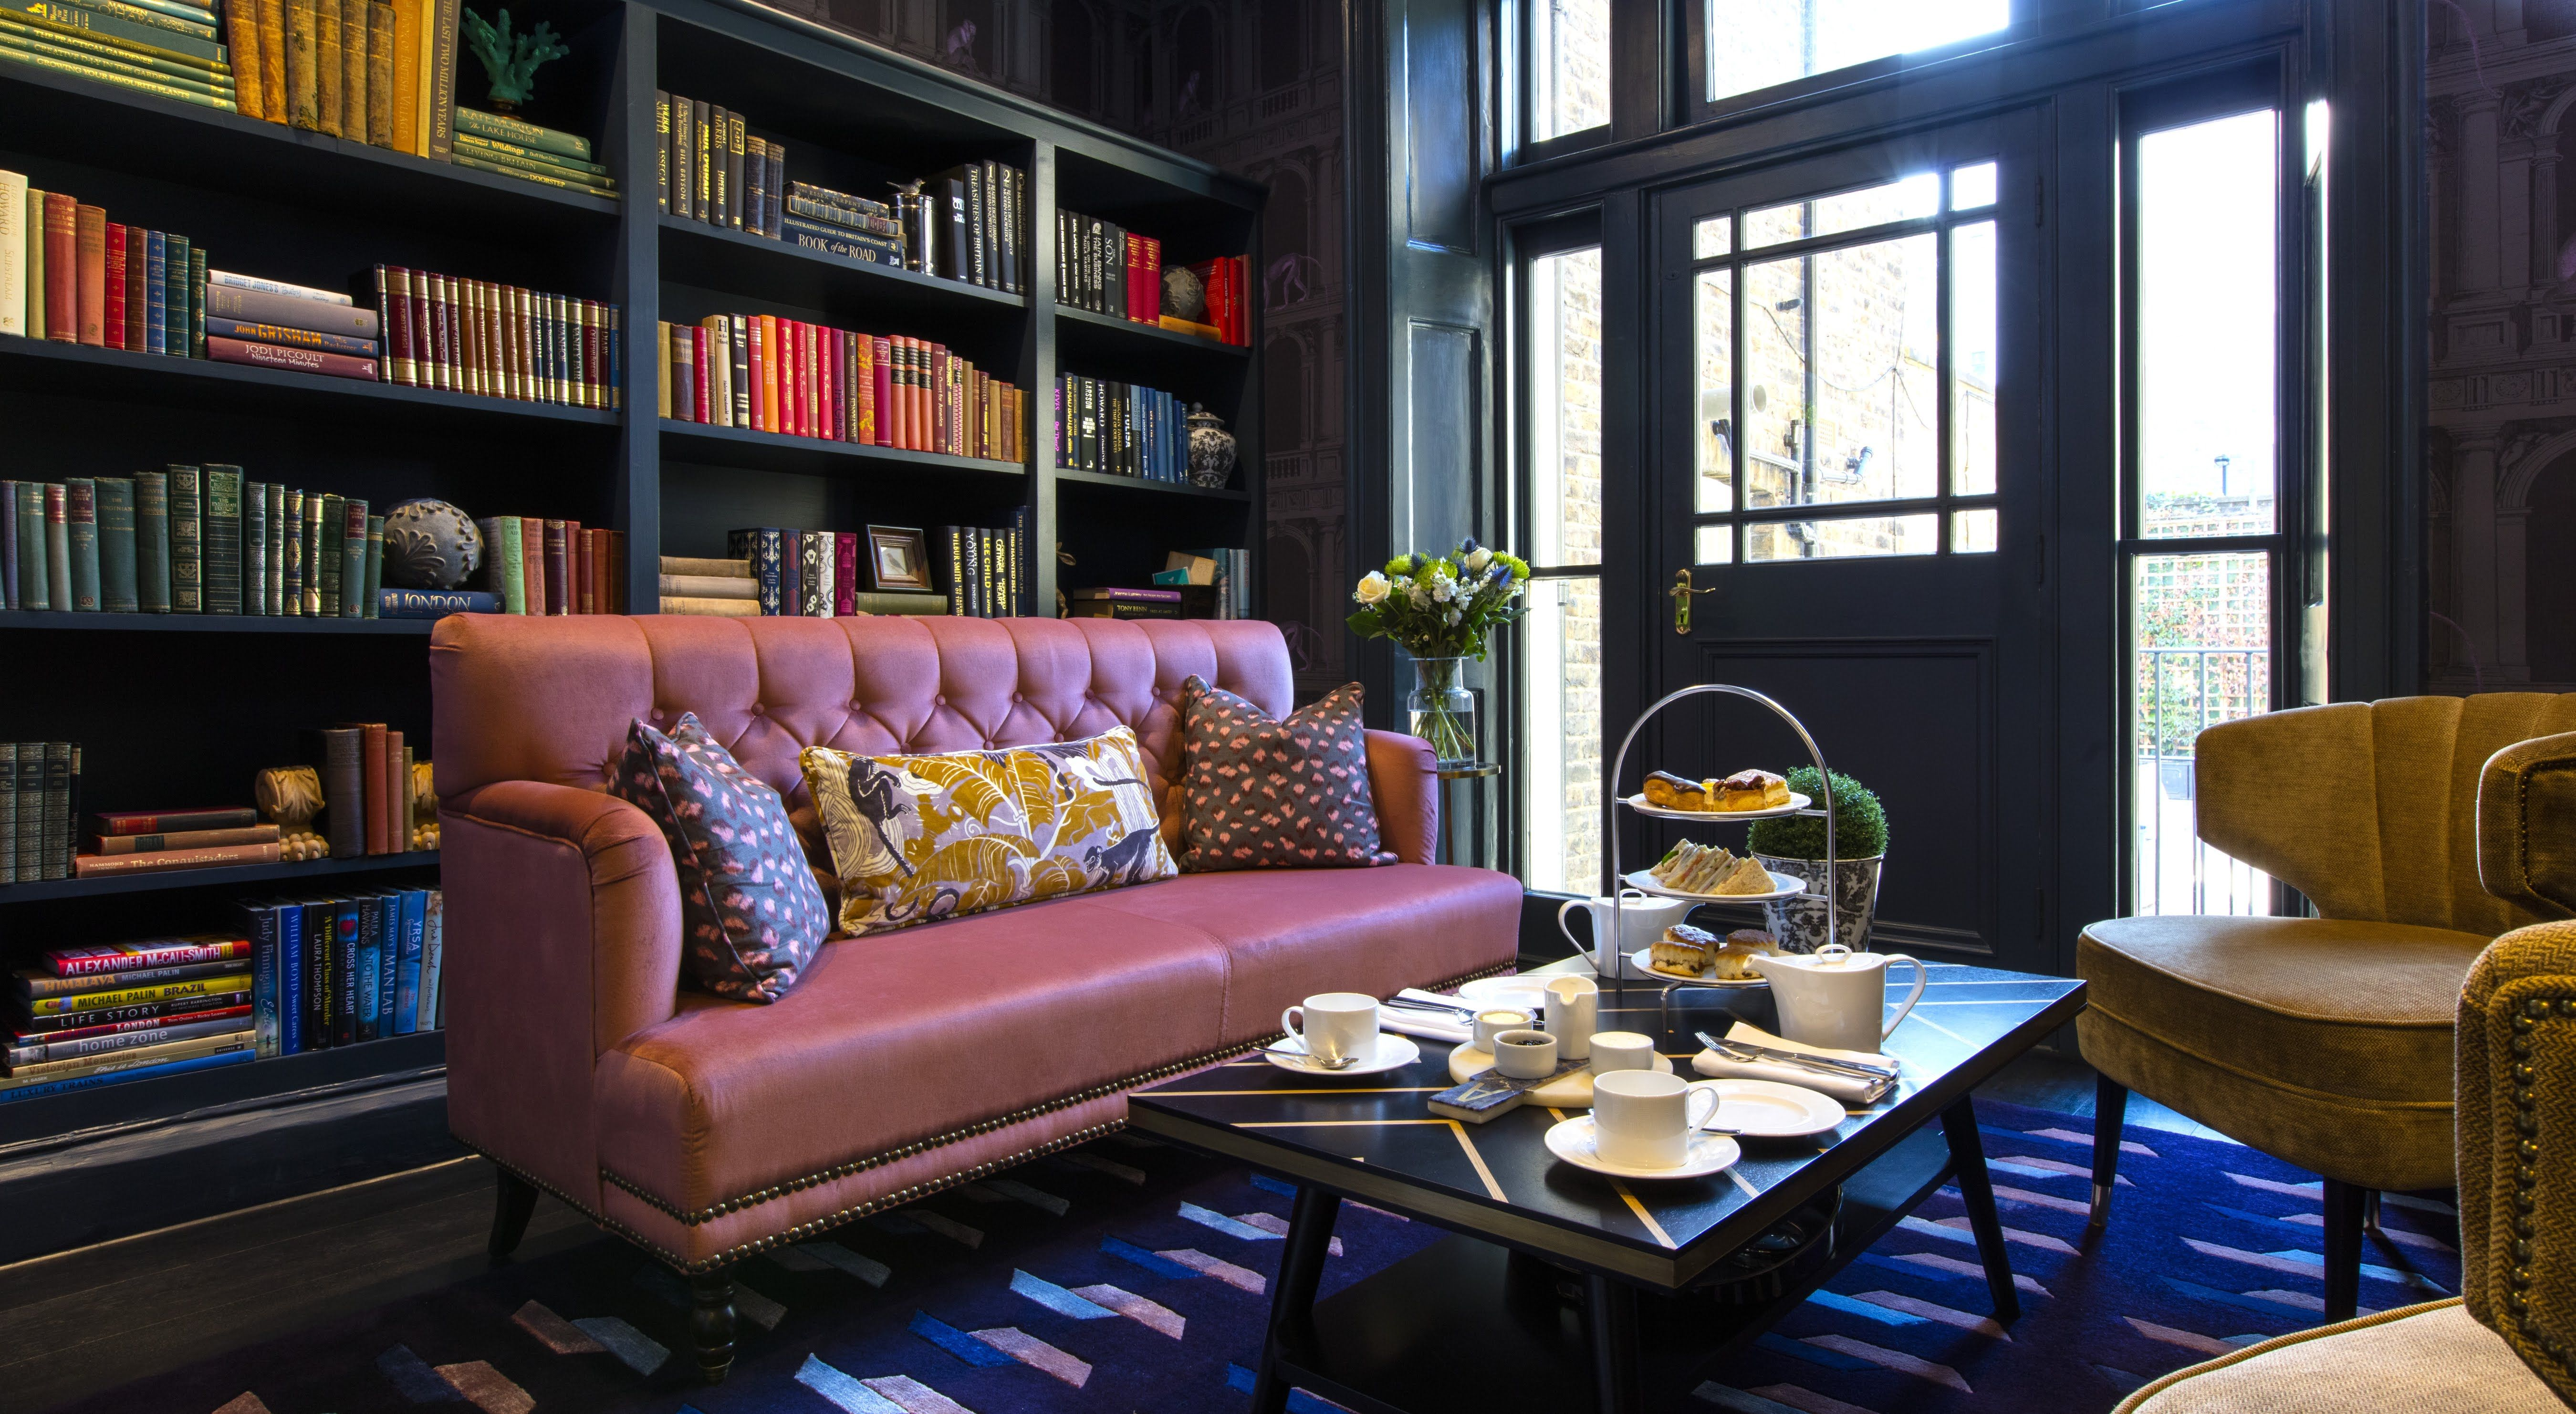 9 Small Living Room Decorating Ideas To Make It Feel Larger Than